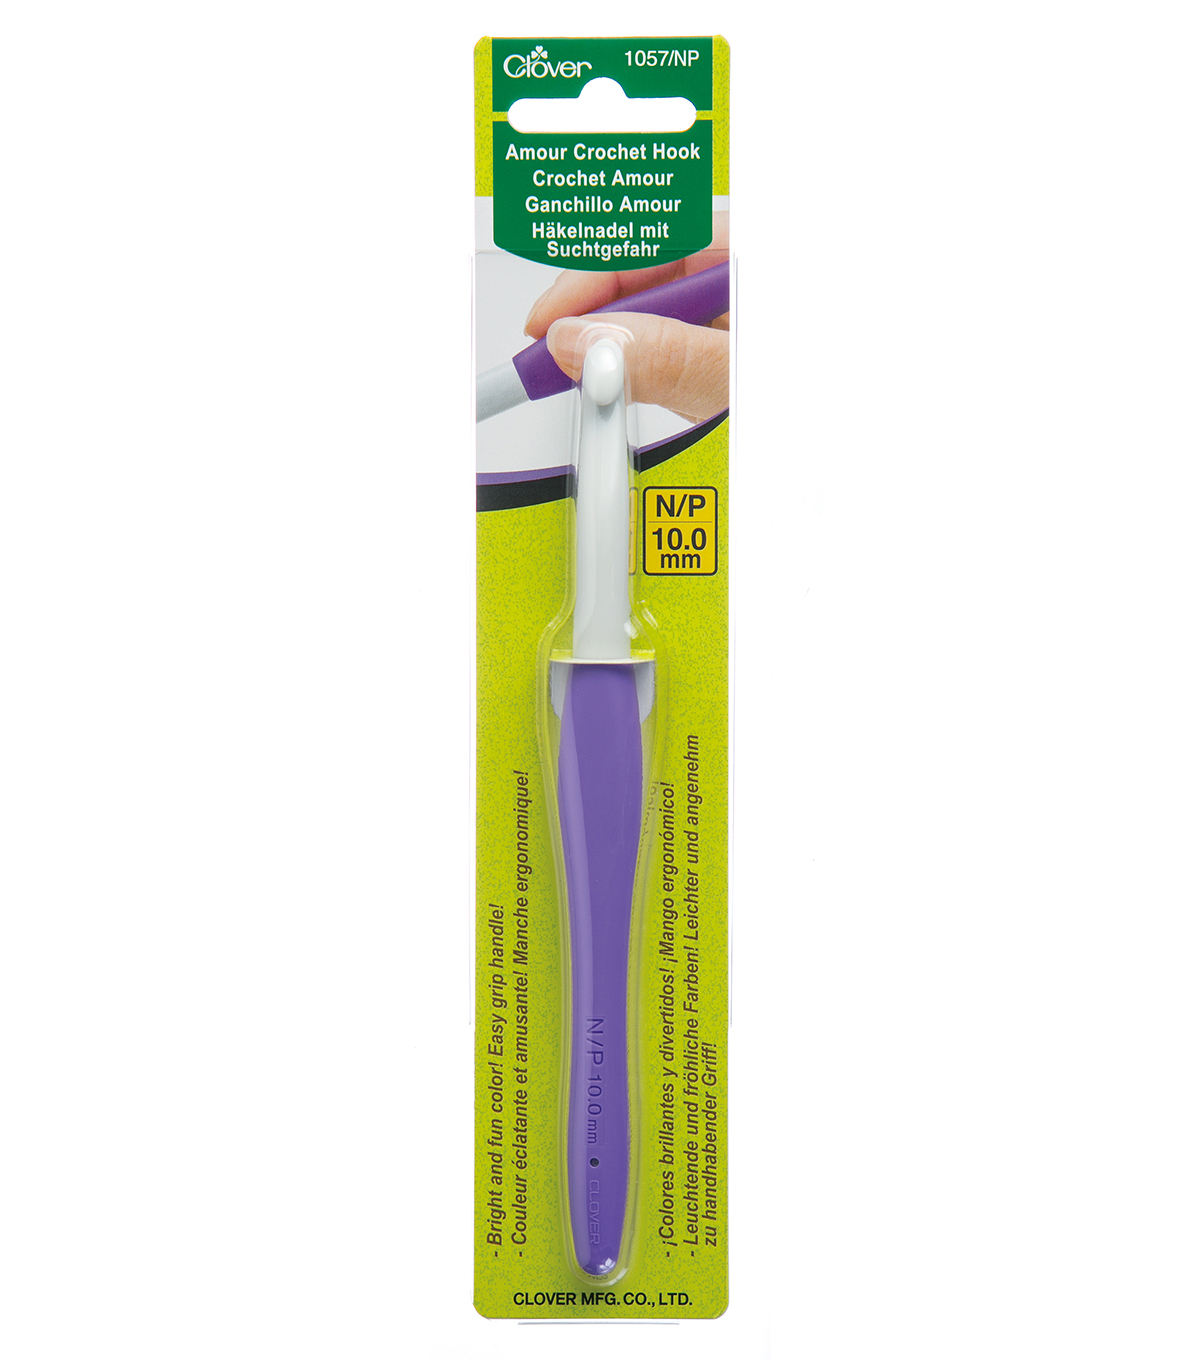 Amour Crochet Hook-Size N/P/10.0mm